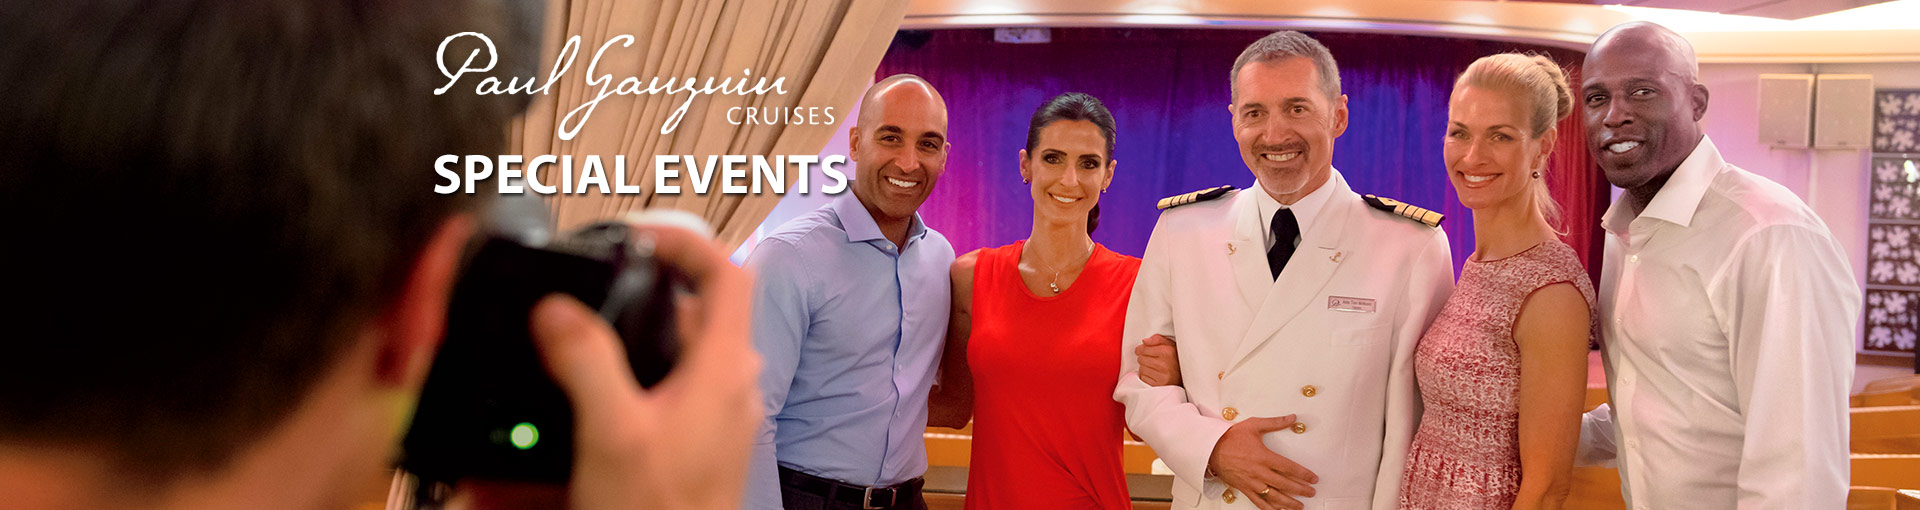 Paul Gauguin Cruises Special Events